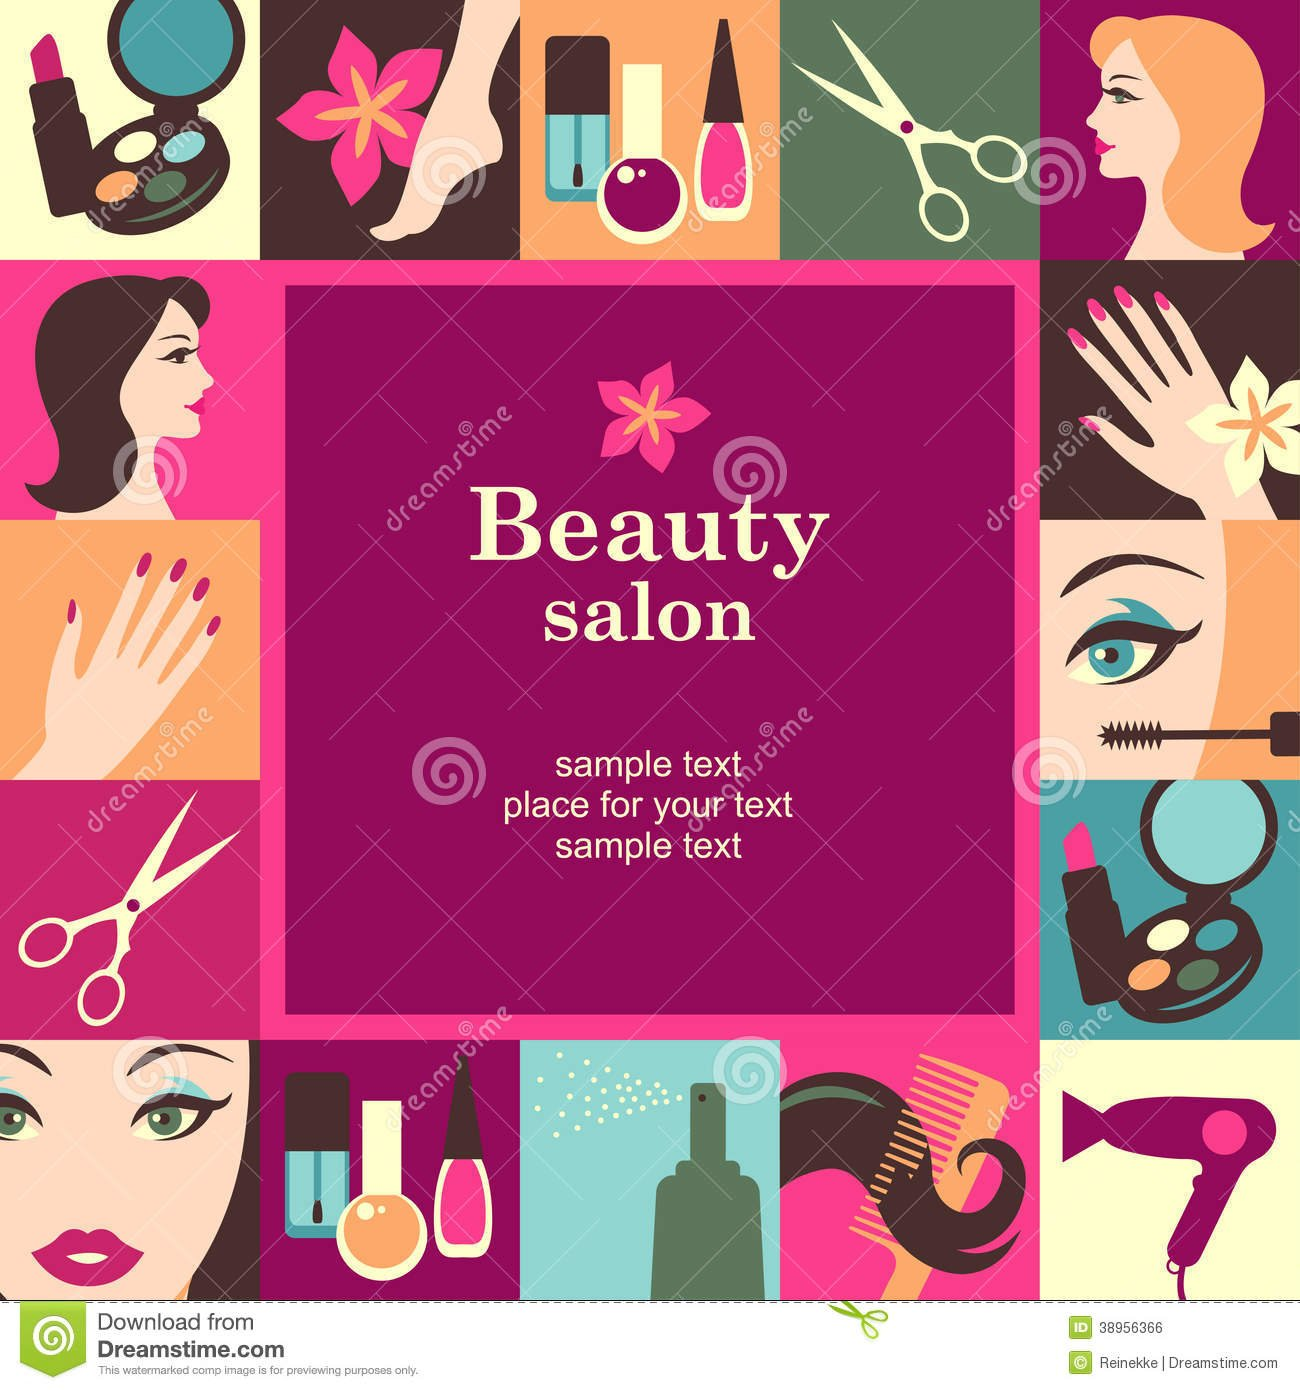 beauty salon wallpaper backgrounds - photo #23